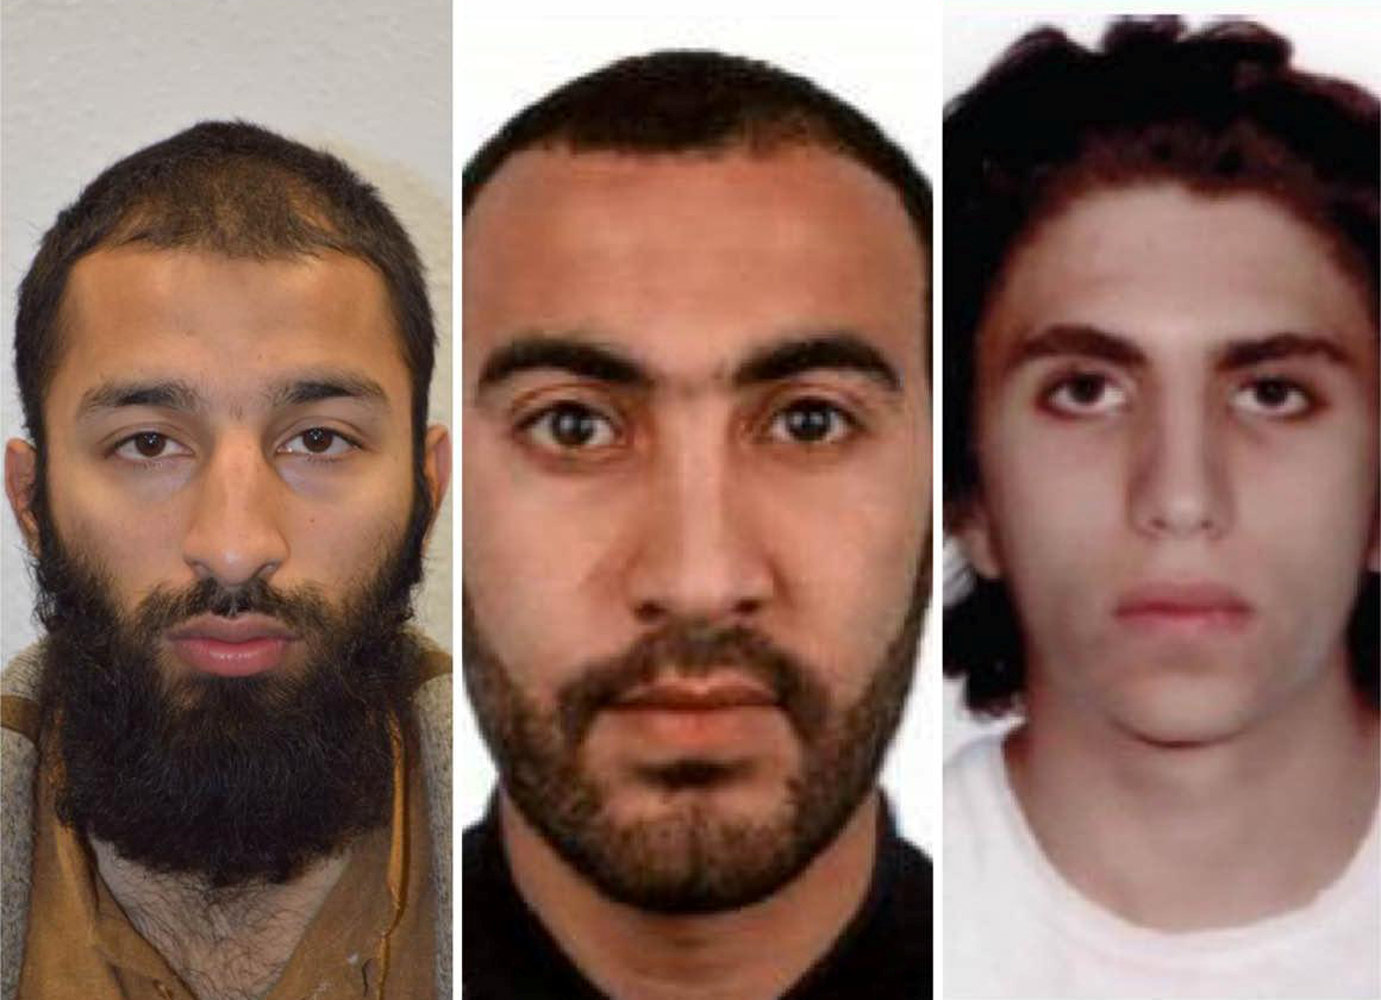 (L-R) Khuram Shazad Butt, Rachid Redouane, Youssef Zaghba in an undated image handed out by the Metropolitan Police on June 6, 2017. (Metropolitan Police Handout via REUTERS)